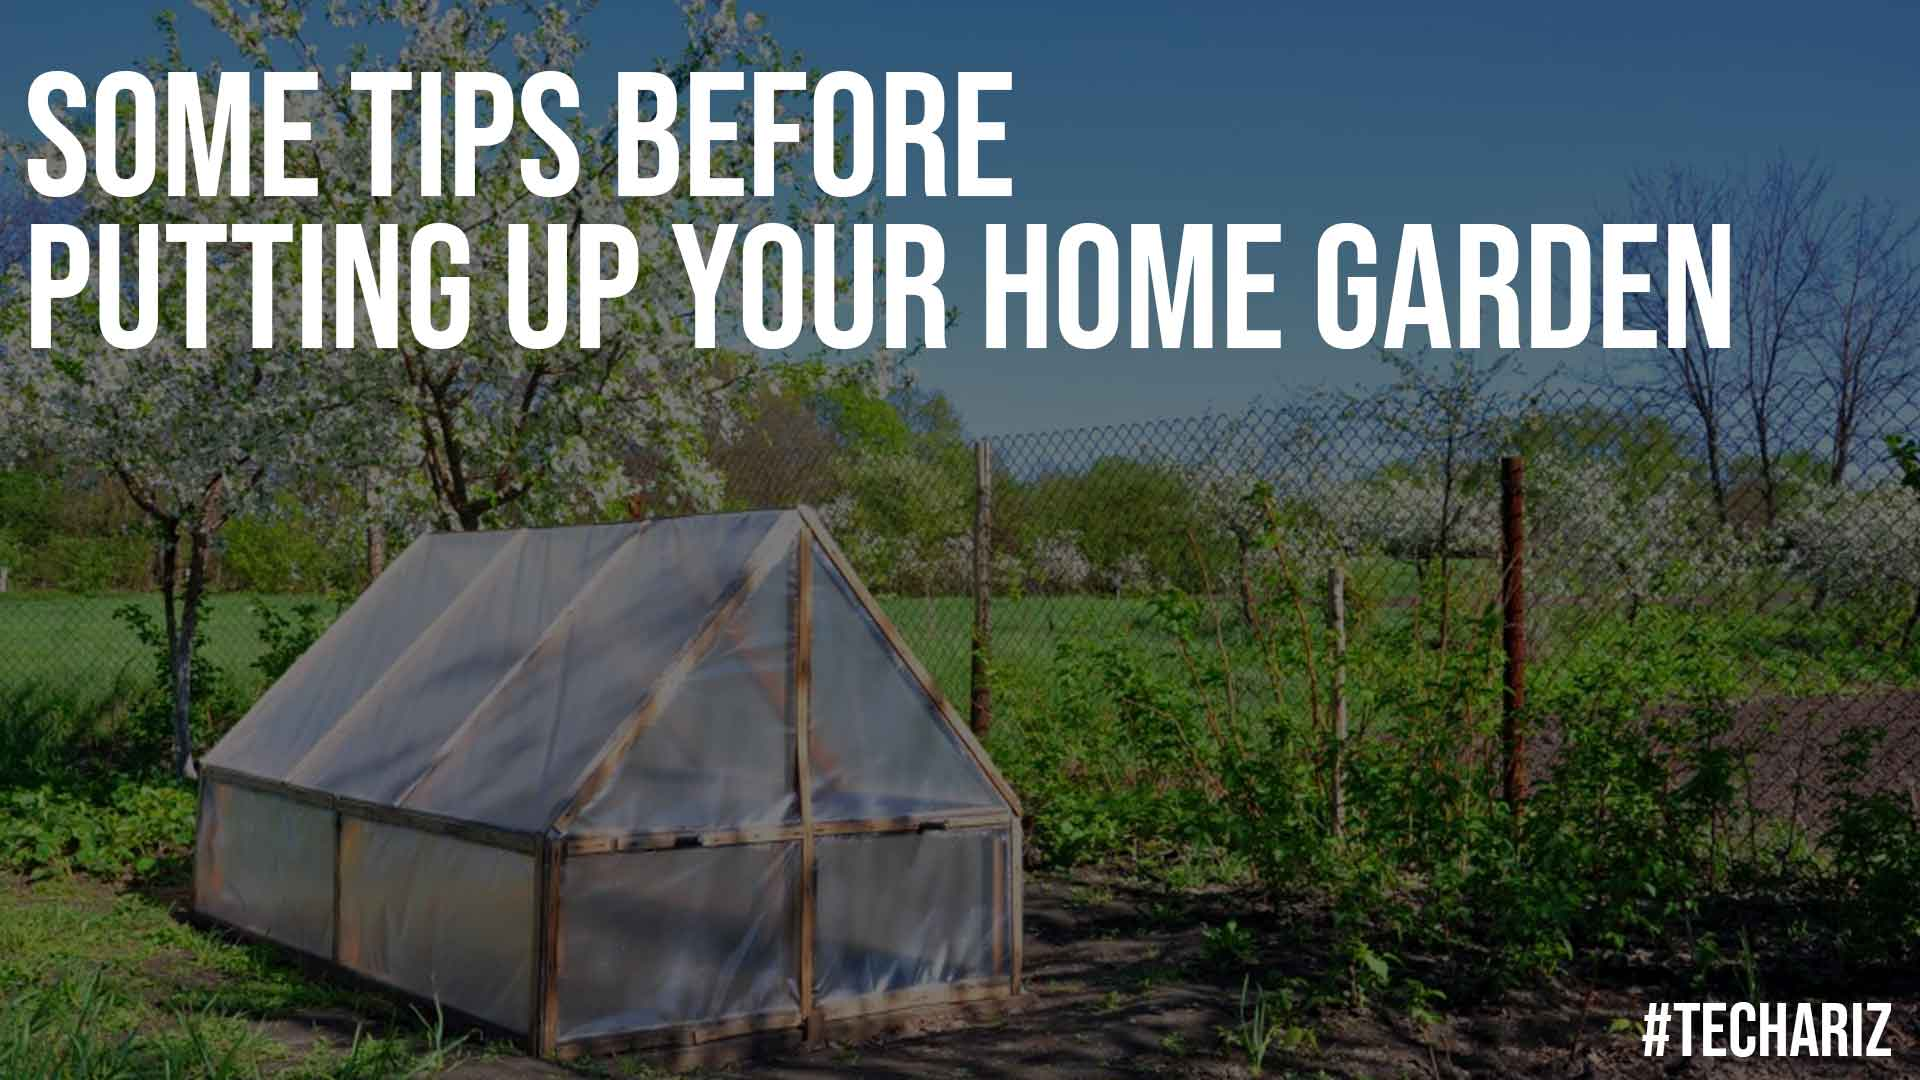 Some Tips Before Putting Up Your Home Garden